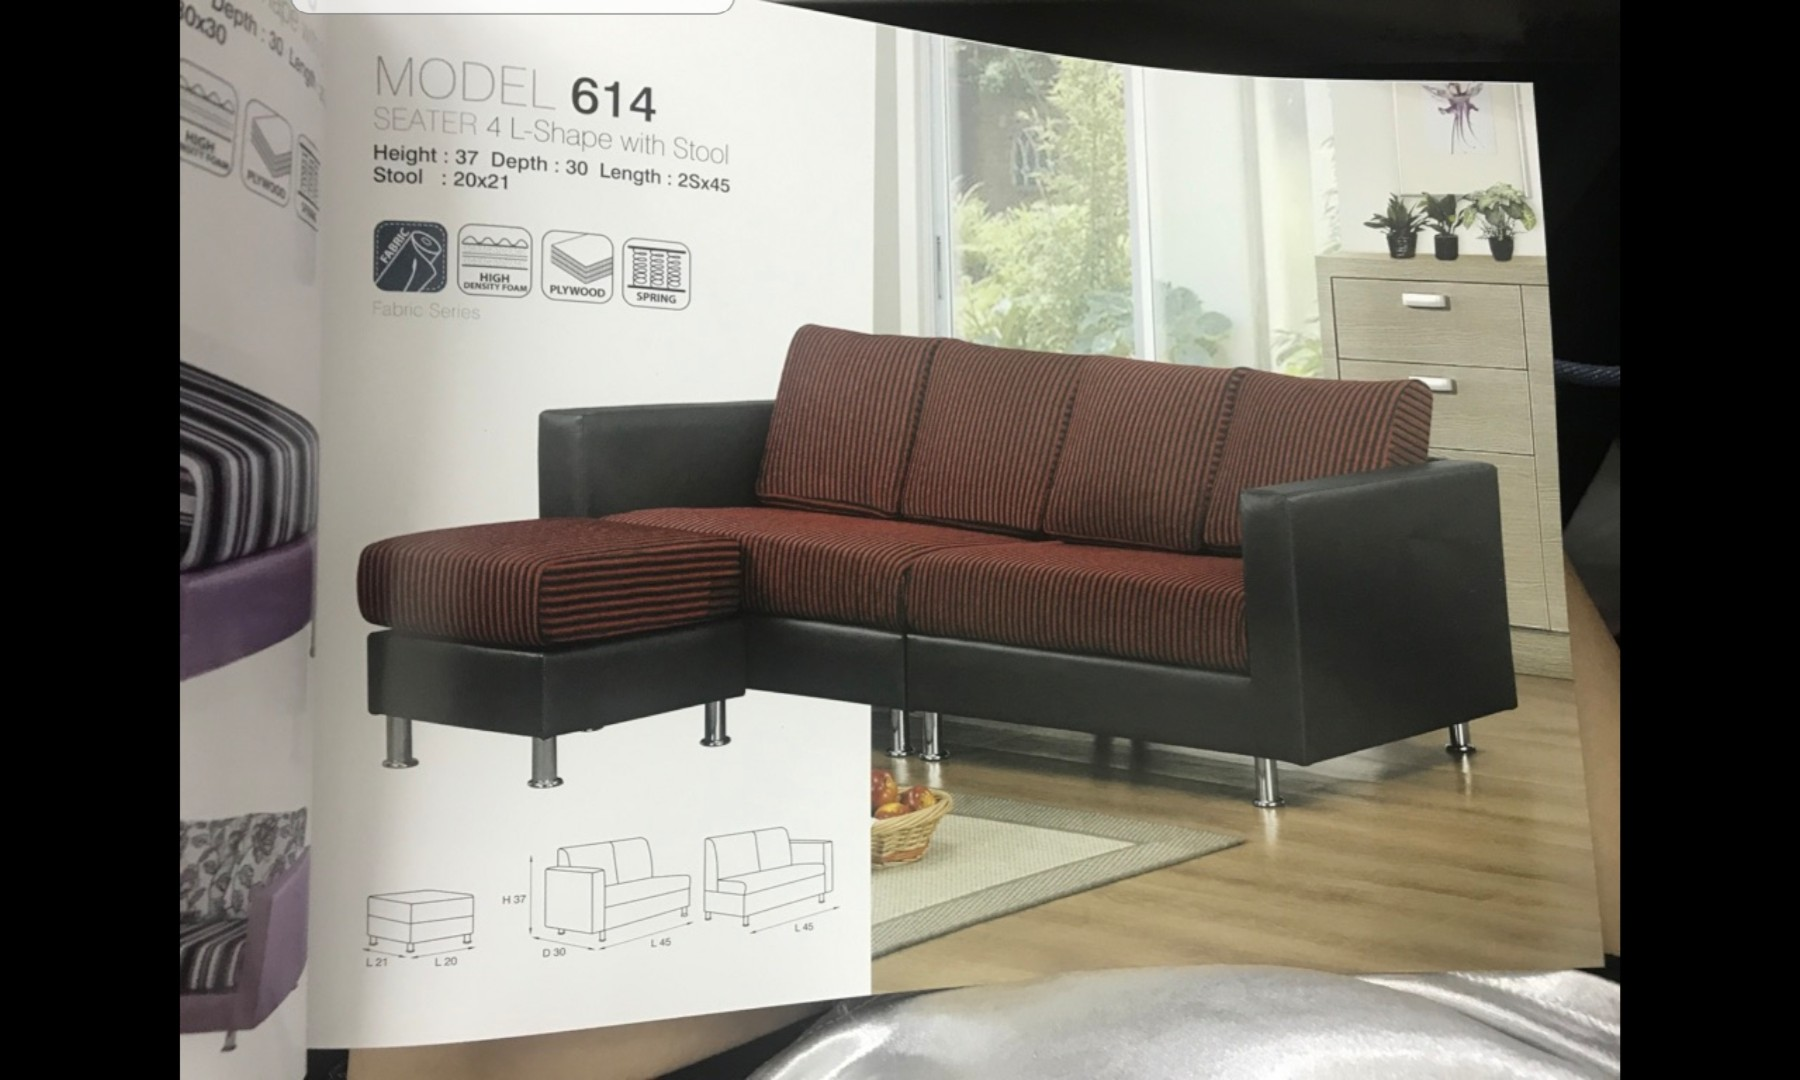 Marvelous Free Delivery Installationsofa Set Couch Lamtechconsult Wood Chair Design Ideas Lamtechconsultcom